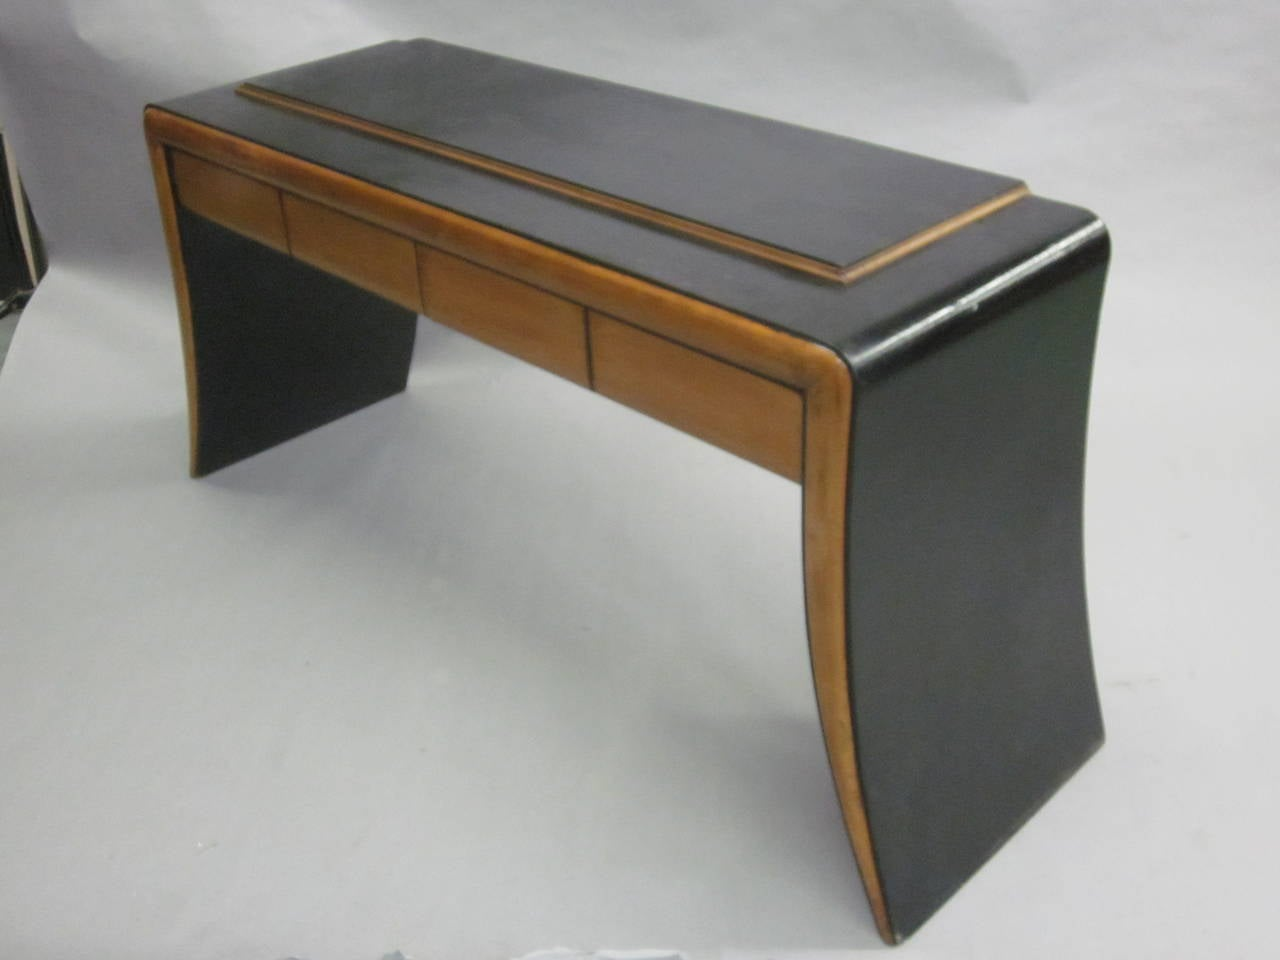 Fruitwood Italian Art Deco / Modern Neoclassical Vanity / Sofa Table by Paolo Buffa, 1930 For Sale